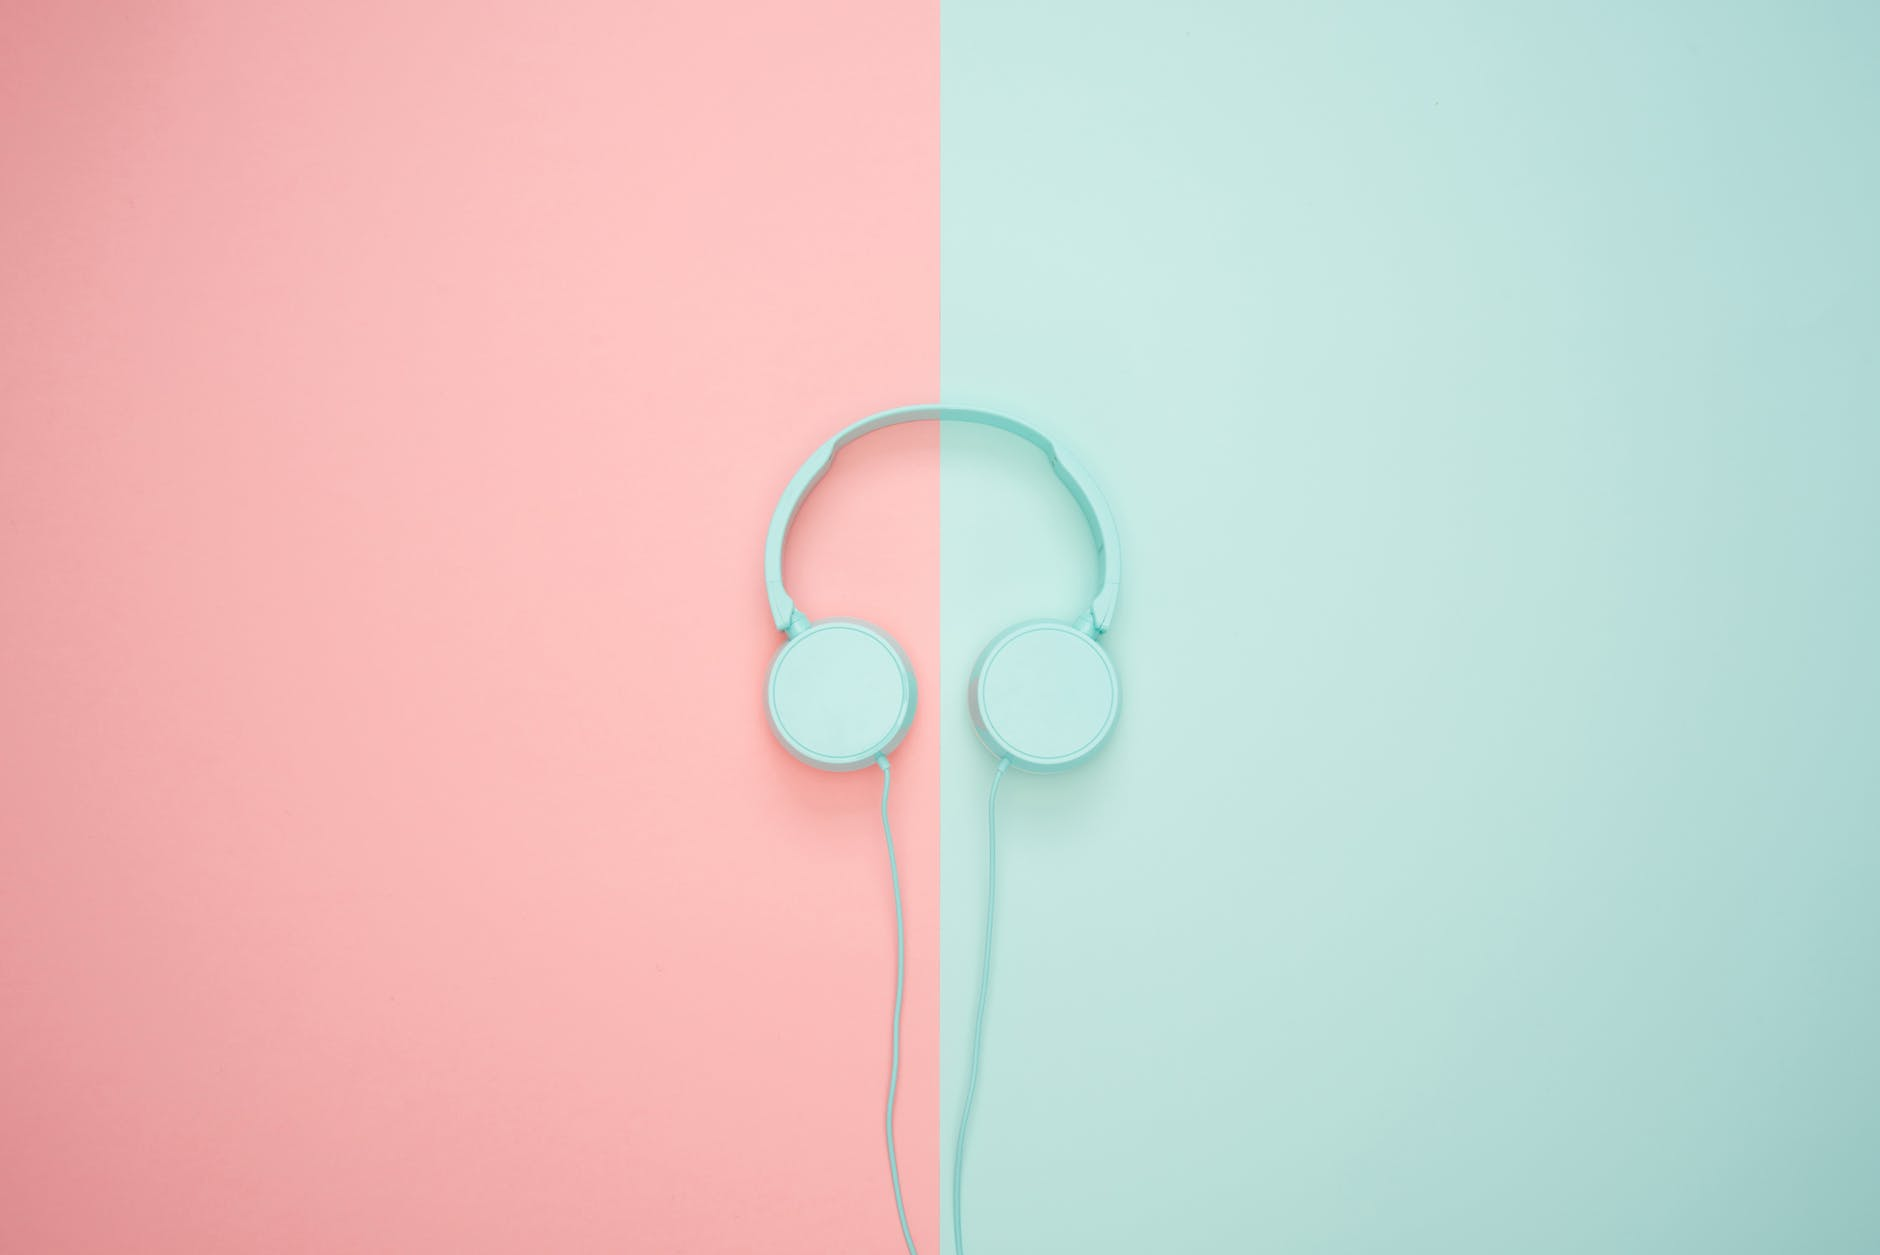 white headphone